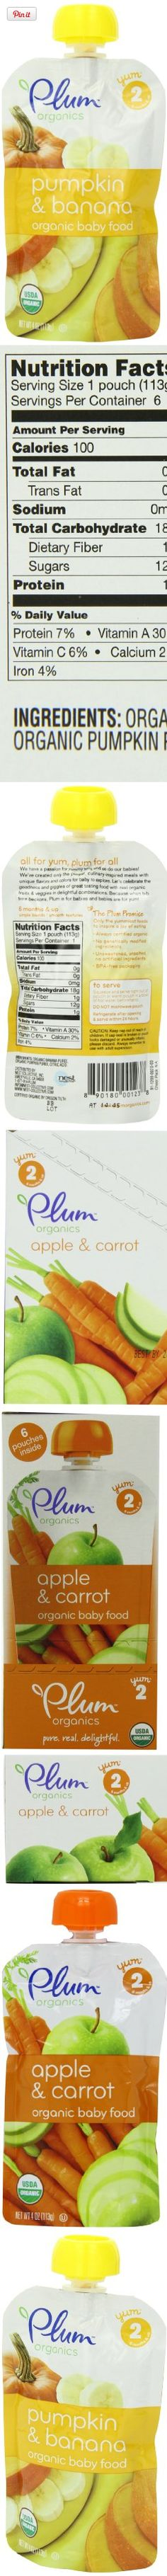 Plum Organics Baby Second Blends, Apple and Carrot, 4.0-Ounce Pouches (Pack of 12), All for yum, Plum for all.  At Plum Organics, we have a passion for yummy food and so do our babies! We've created only the purest, culinary-inspired meals with unique flavors and colors for baby to..., #spout #pouches for more information visit us at  www.coffeebags.co.za